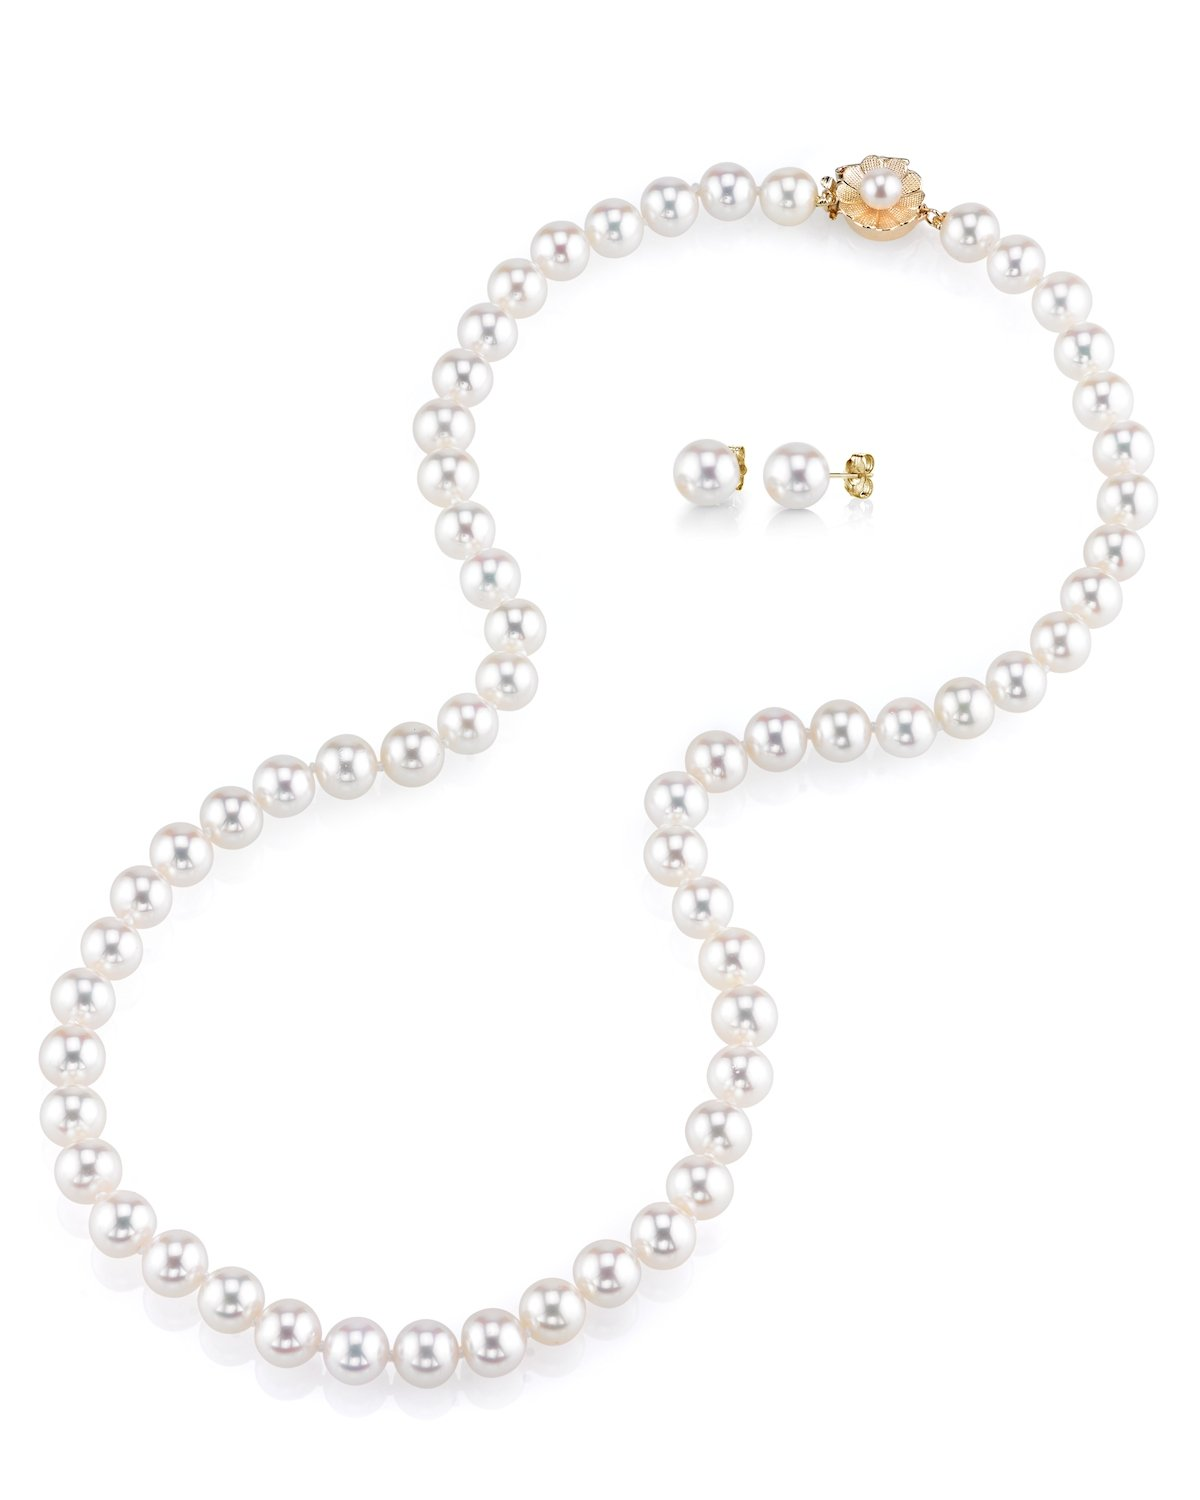 THE PEARL SOURCE AAA Quality 8-9mm Round White Freshwater Cultured Pearl Necklace & Earrings Set with 14K Yellow Gold Flower Clasp for Women